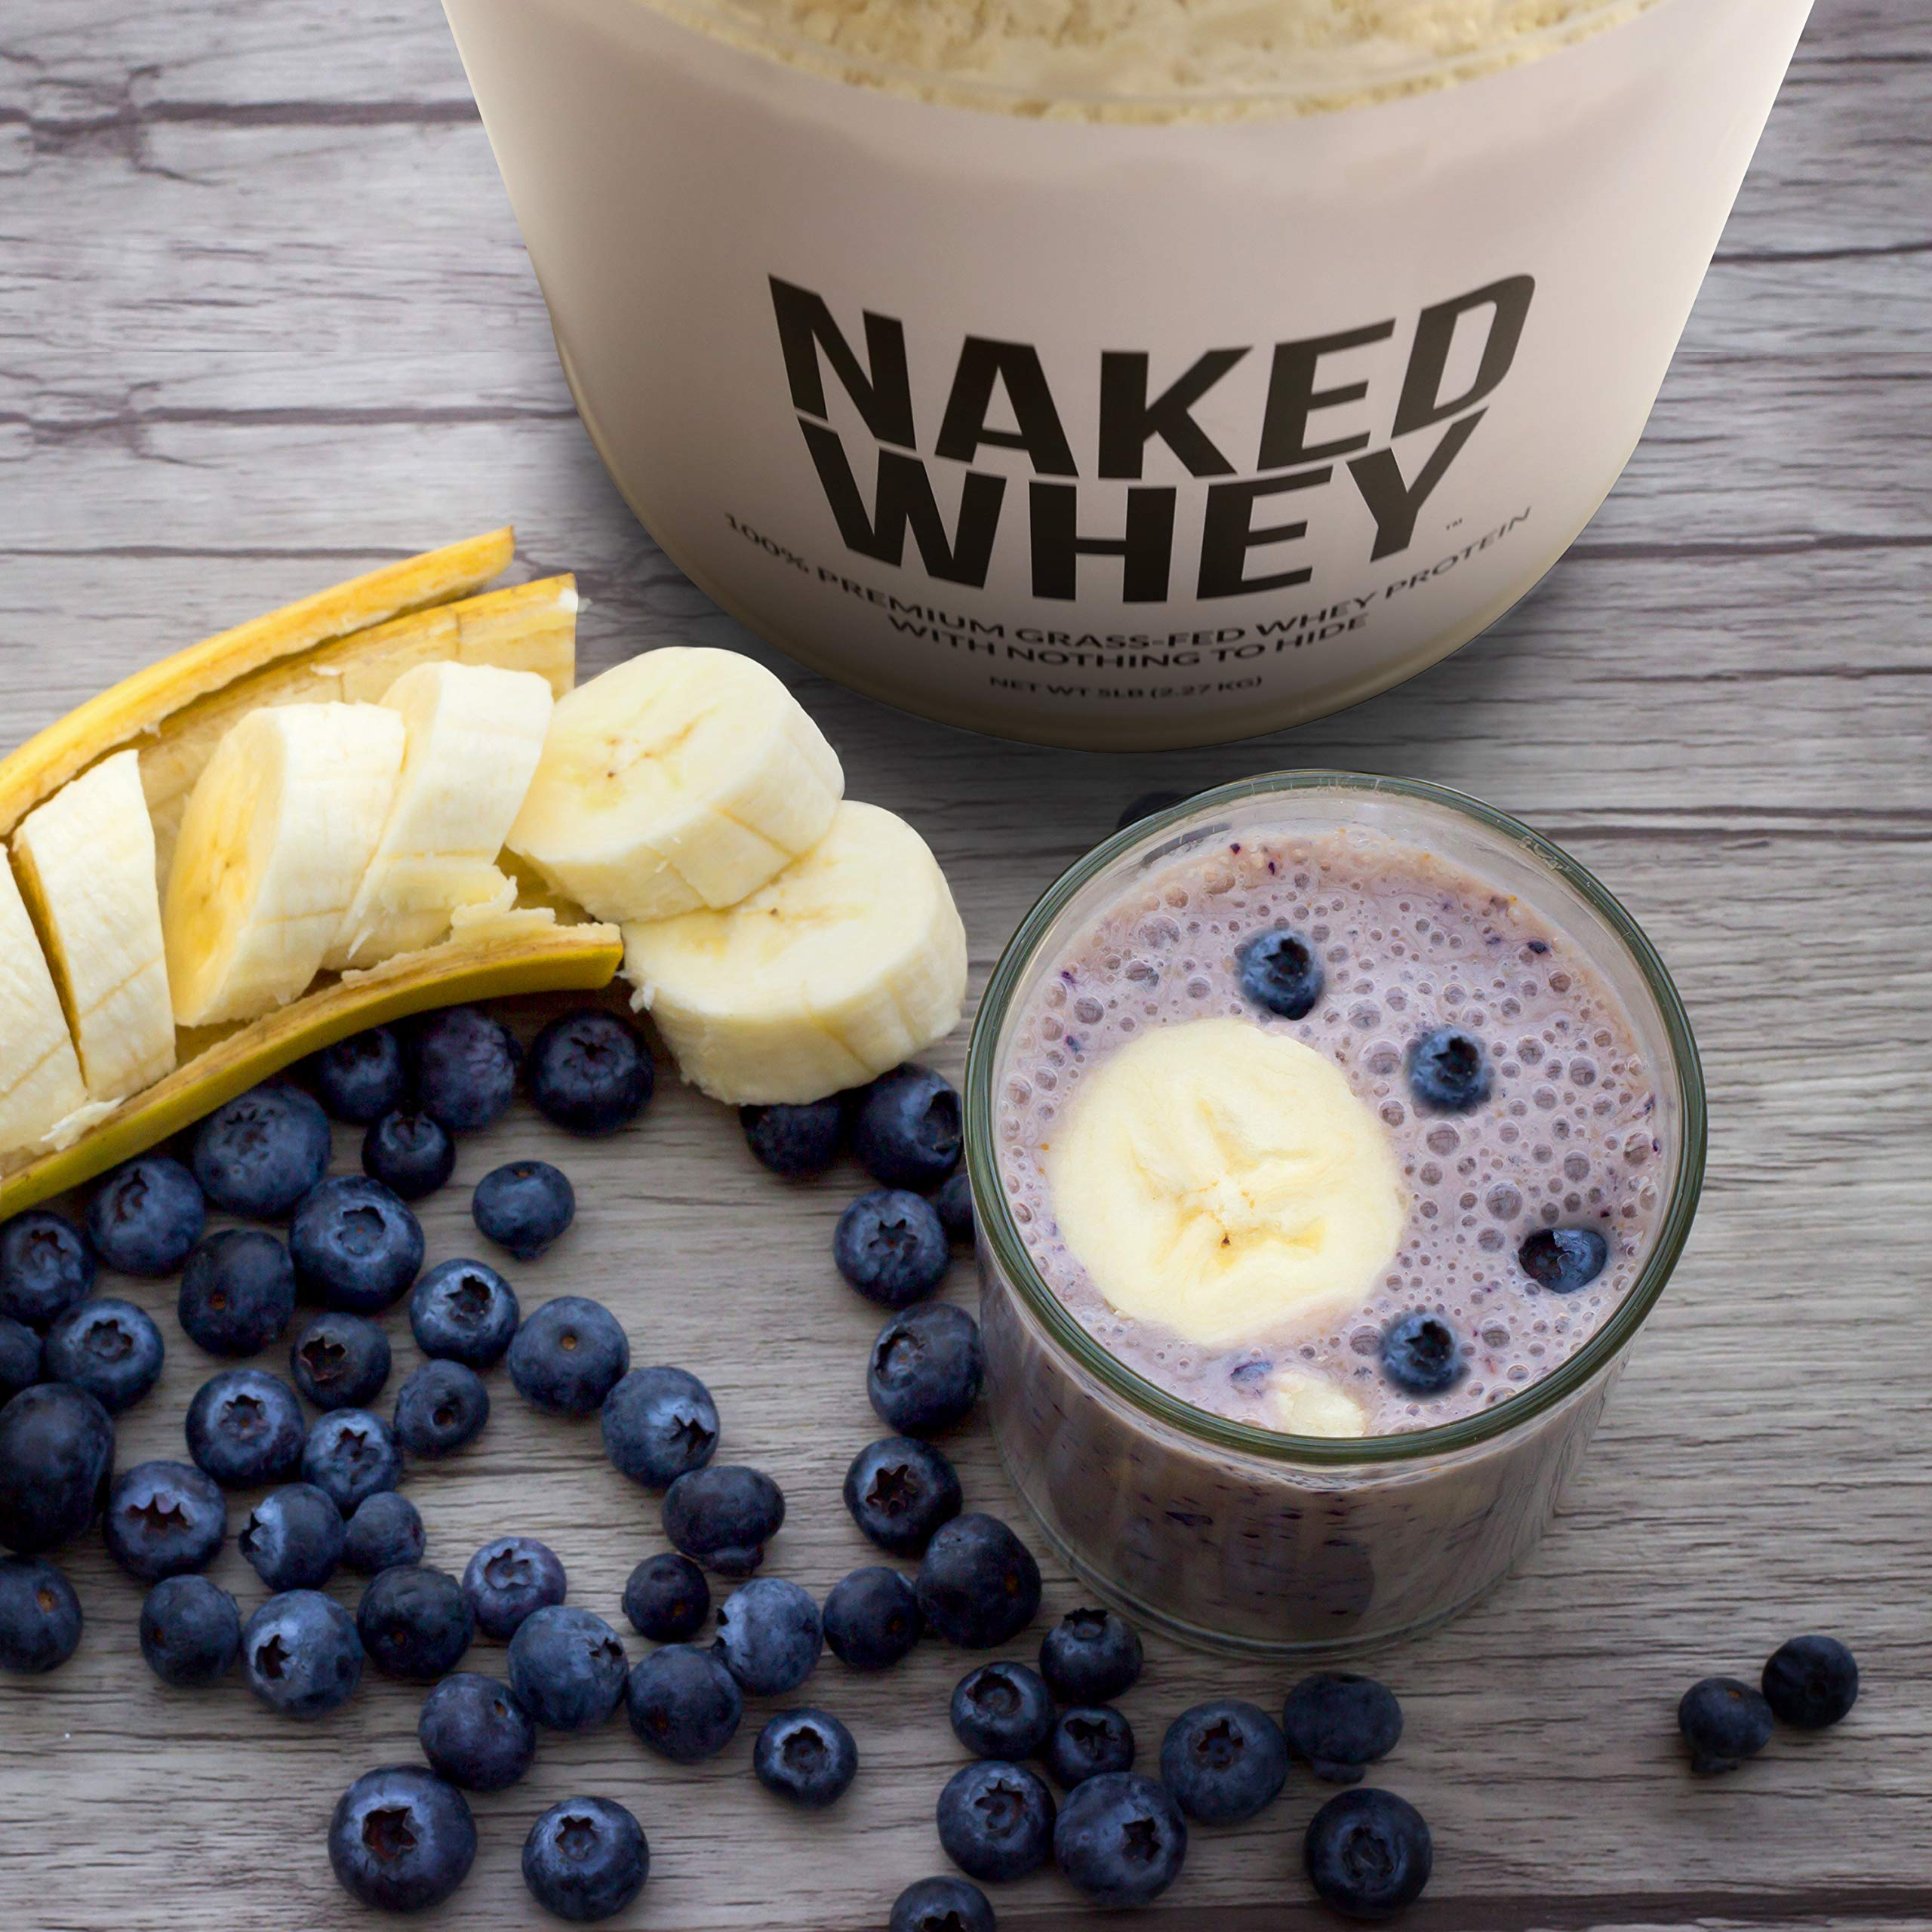 Naked WHEY 1LB 100% Grass Fed Unflavored Whey Protein Powder - US Farms, Only 1 Ingredient, Undenatured - No GMO, Soy or Gluten - No Preservatives - Promote Muscle Growth and Recovery - 15 Servings by NAKED nutrition (Image #8)